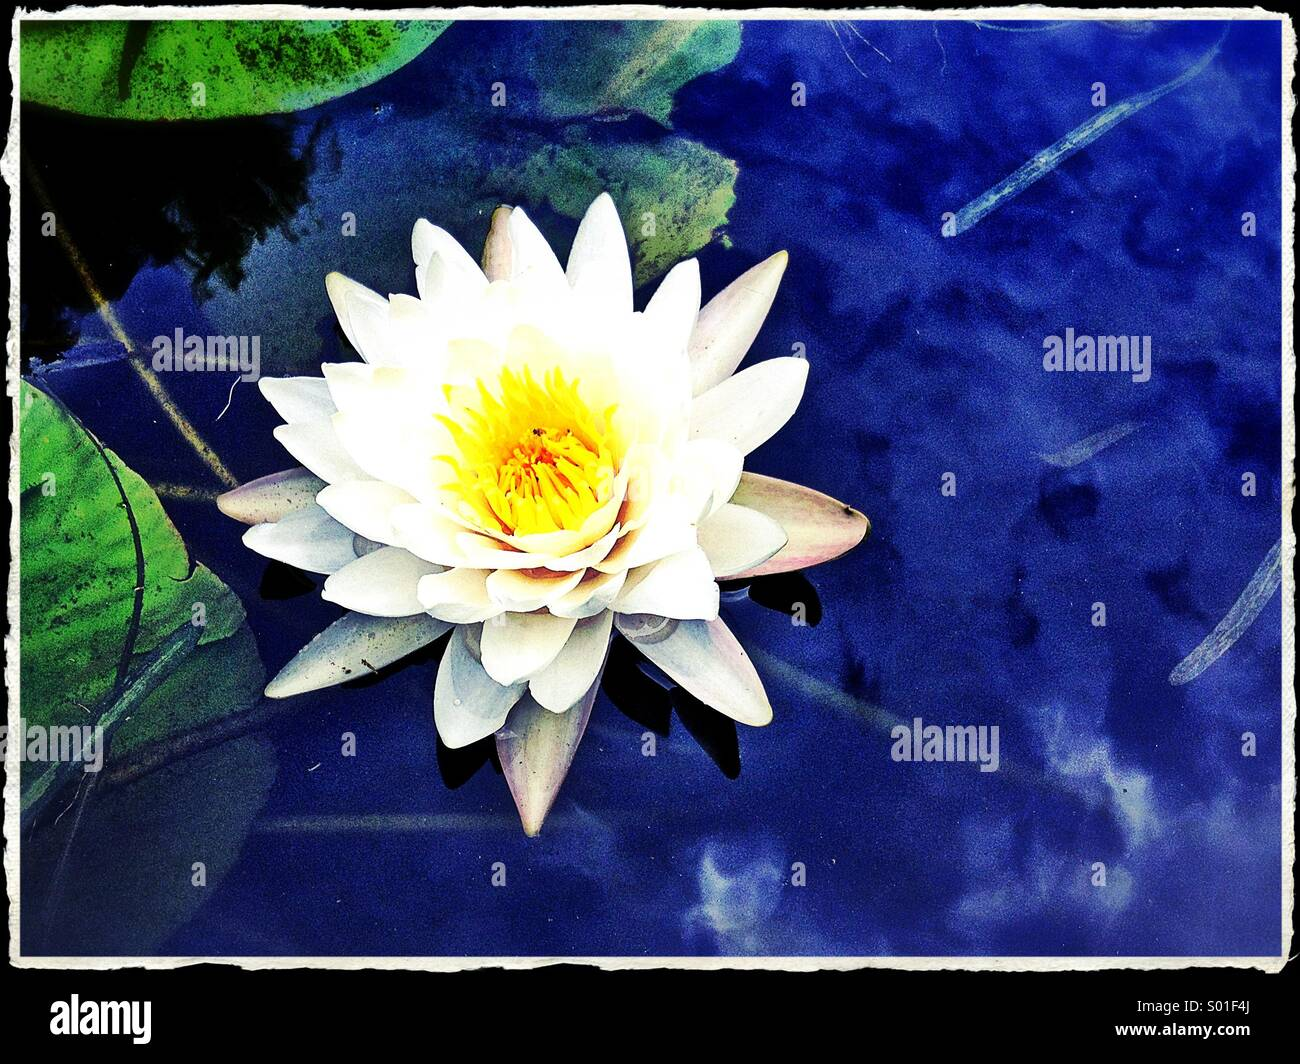 Blue lily flower stock photos blue lily flower stock images alamy white water lily floating in blue water stock image izmirmasajfo